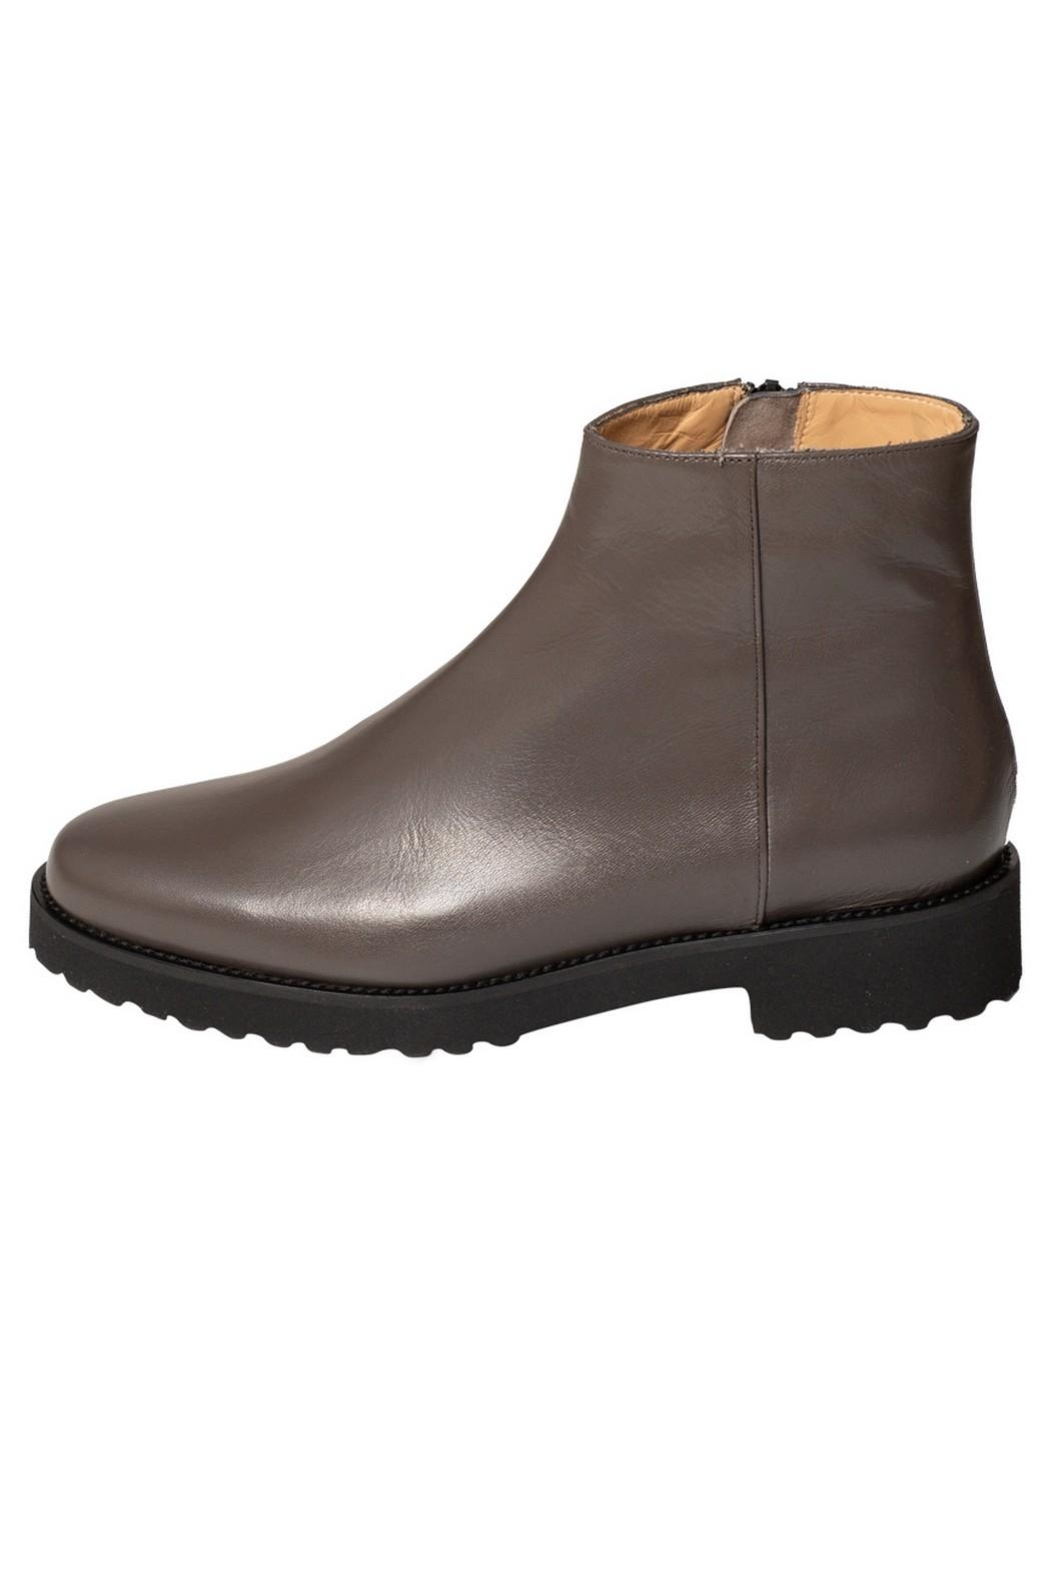 Pascucci Grey Leather Ankle-Boots - Main Image